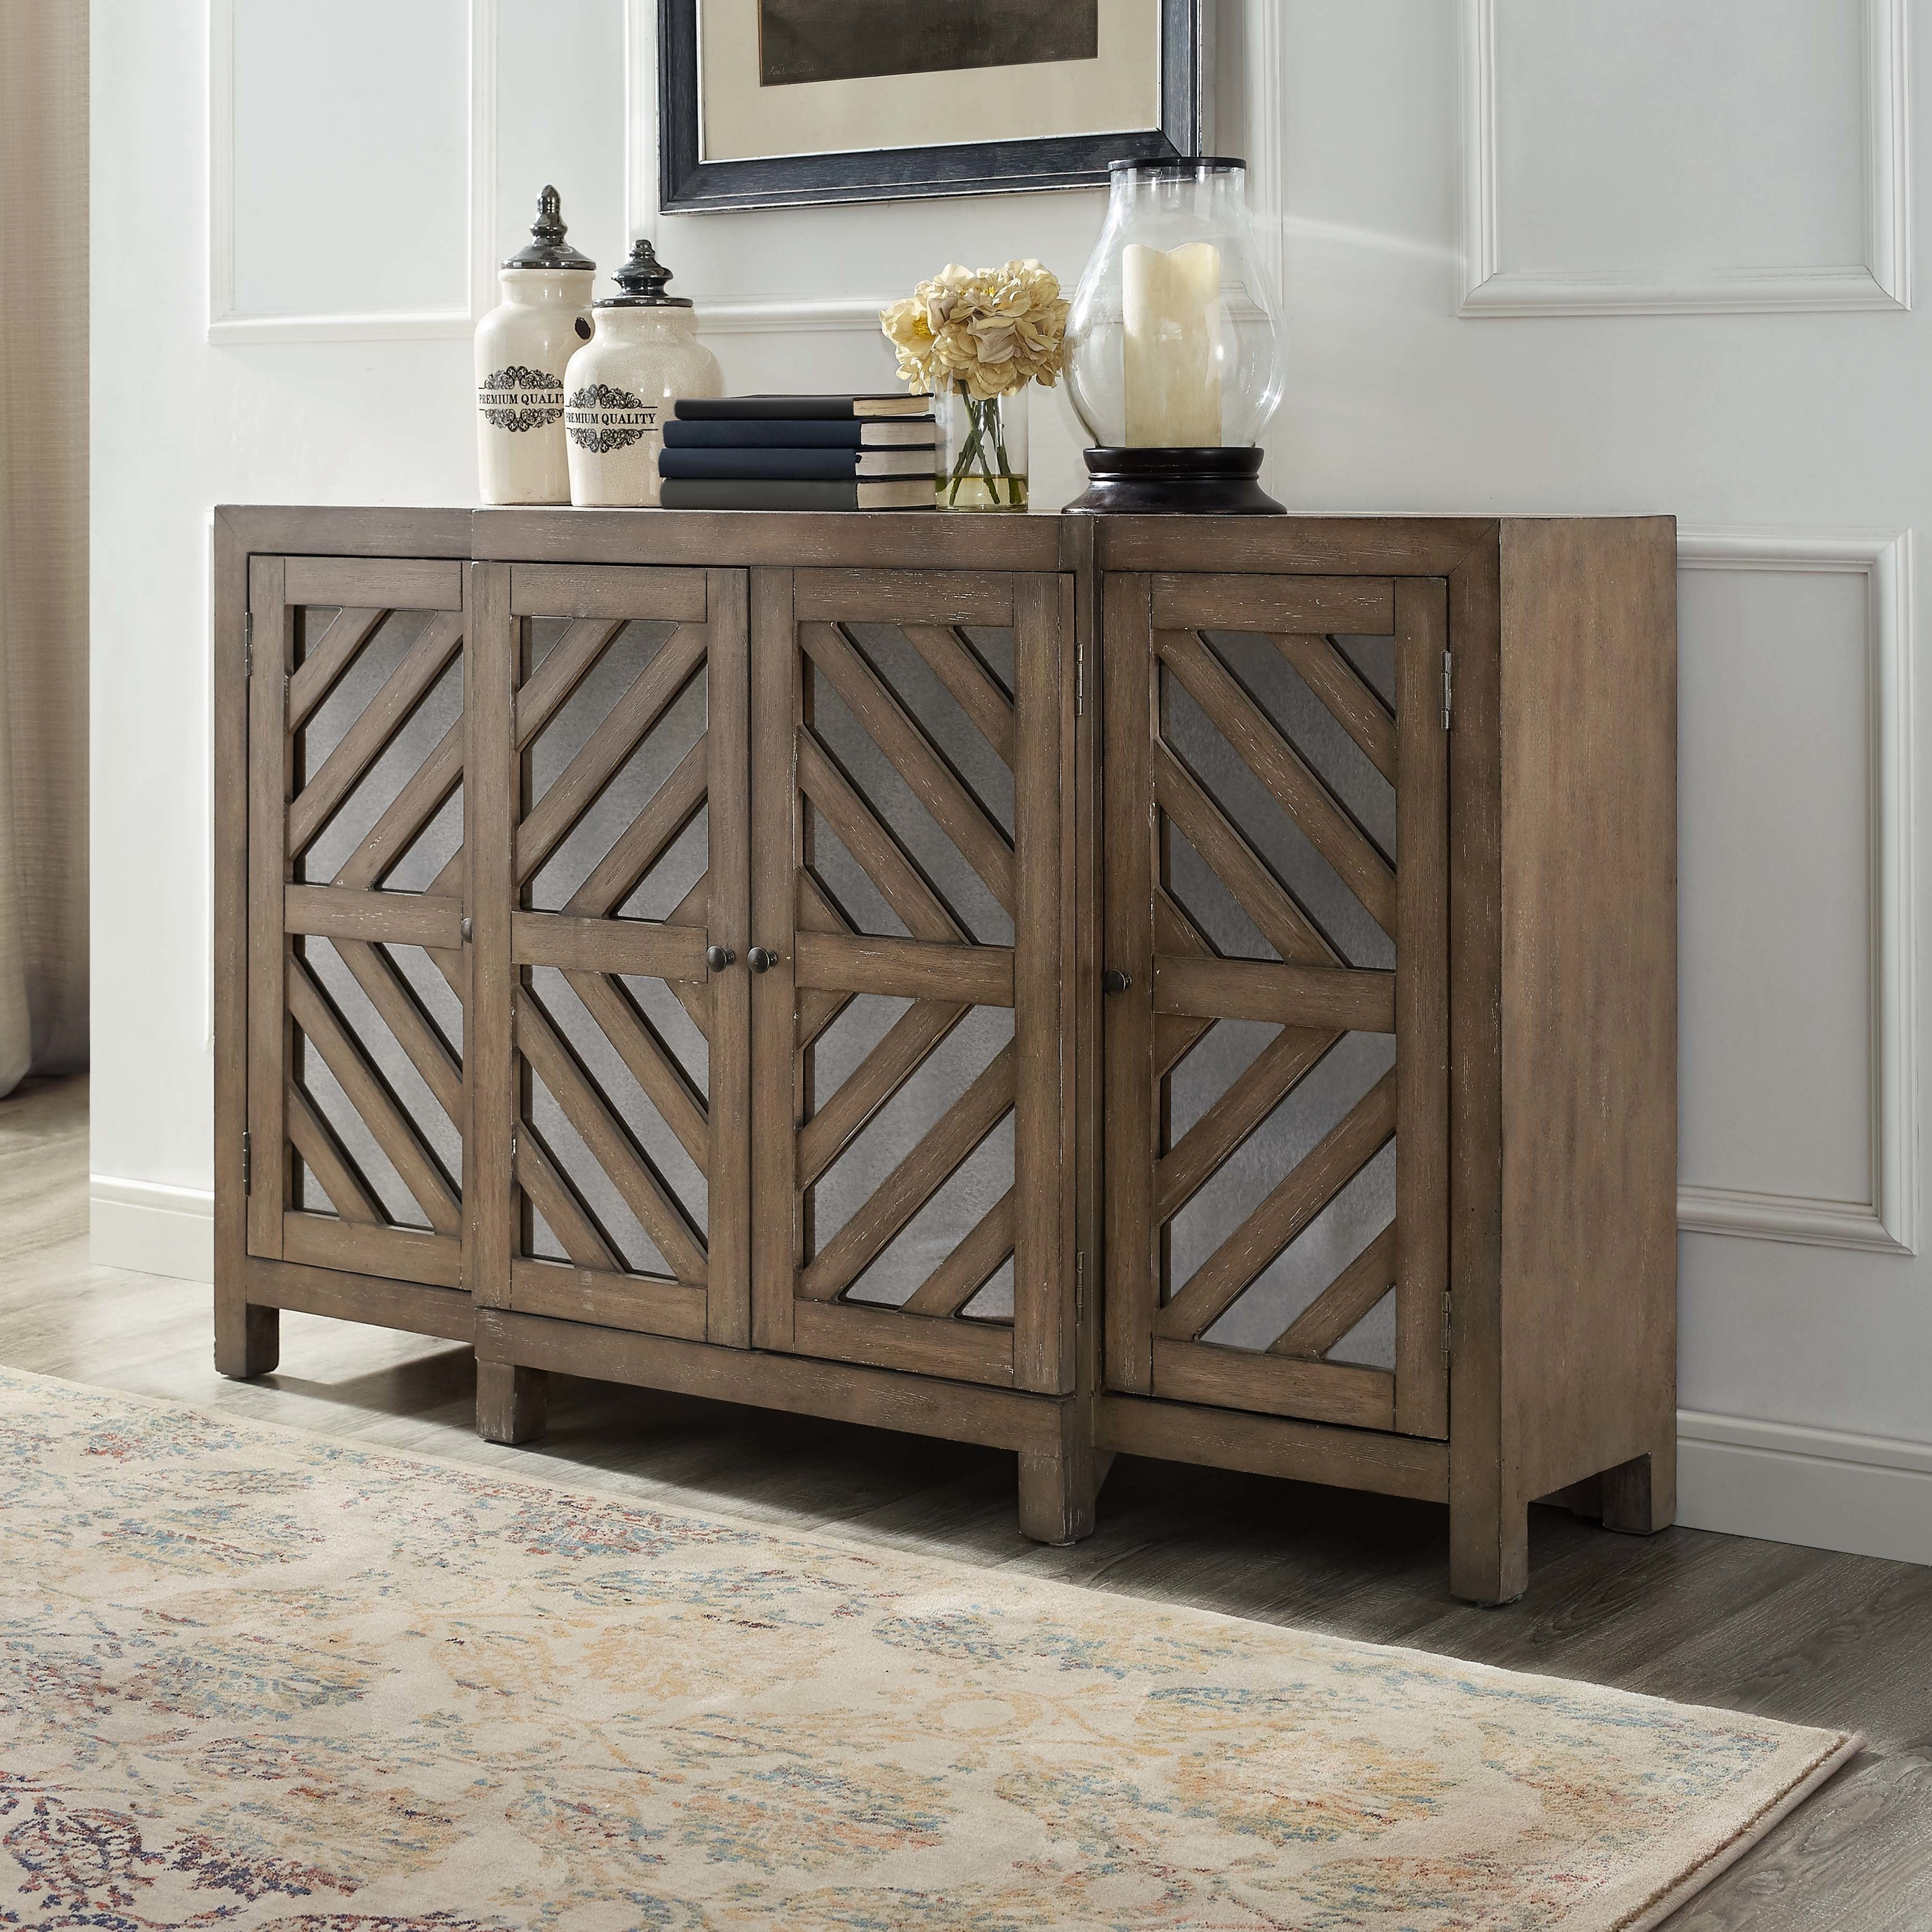 Union Rustic Lowrey 4 Door Credenza & Reviews | Wayfair with Vintage Finish 4-Door Sideboards (Image 26 of 30)